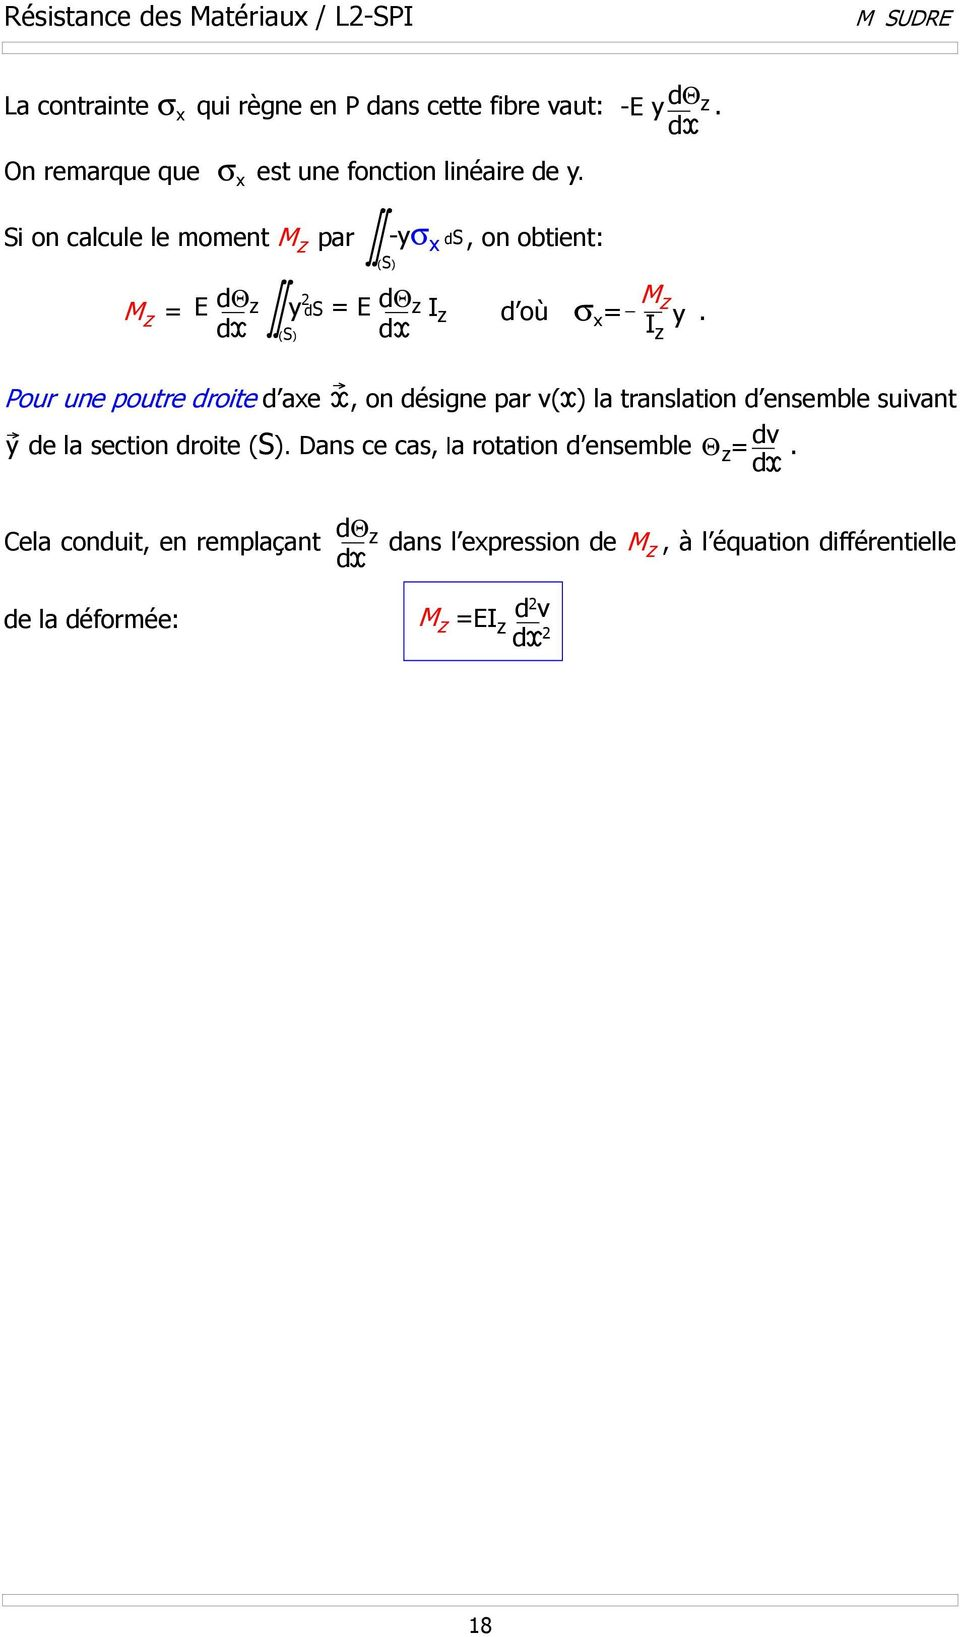 Si on calcule le moment M par -σ ds, on obtient: M = E dθ 2 ds = E dθ I d où σ.